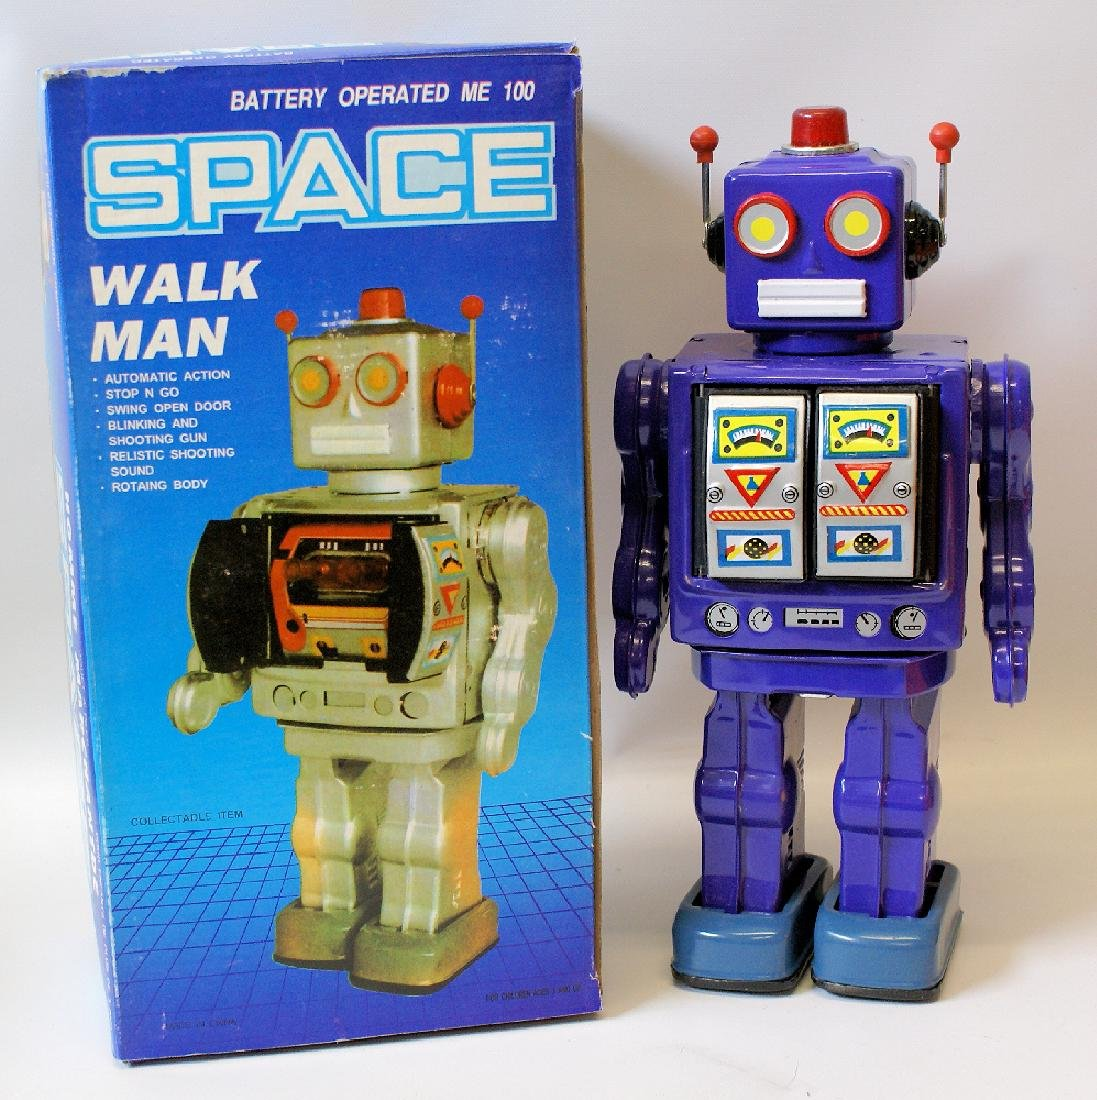 Vintage 1990's Tin Litho Purple SPACE 'WALK MAN' ROBOT